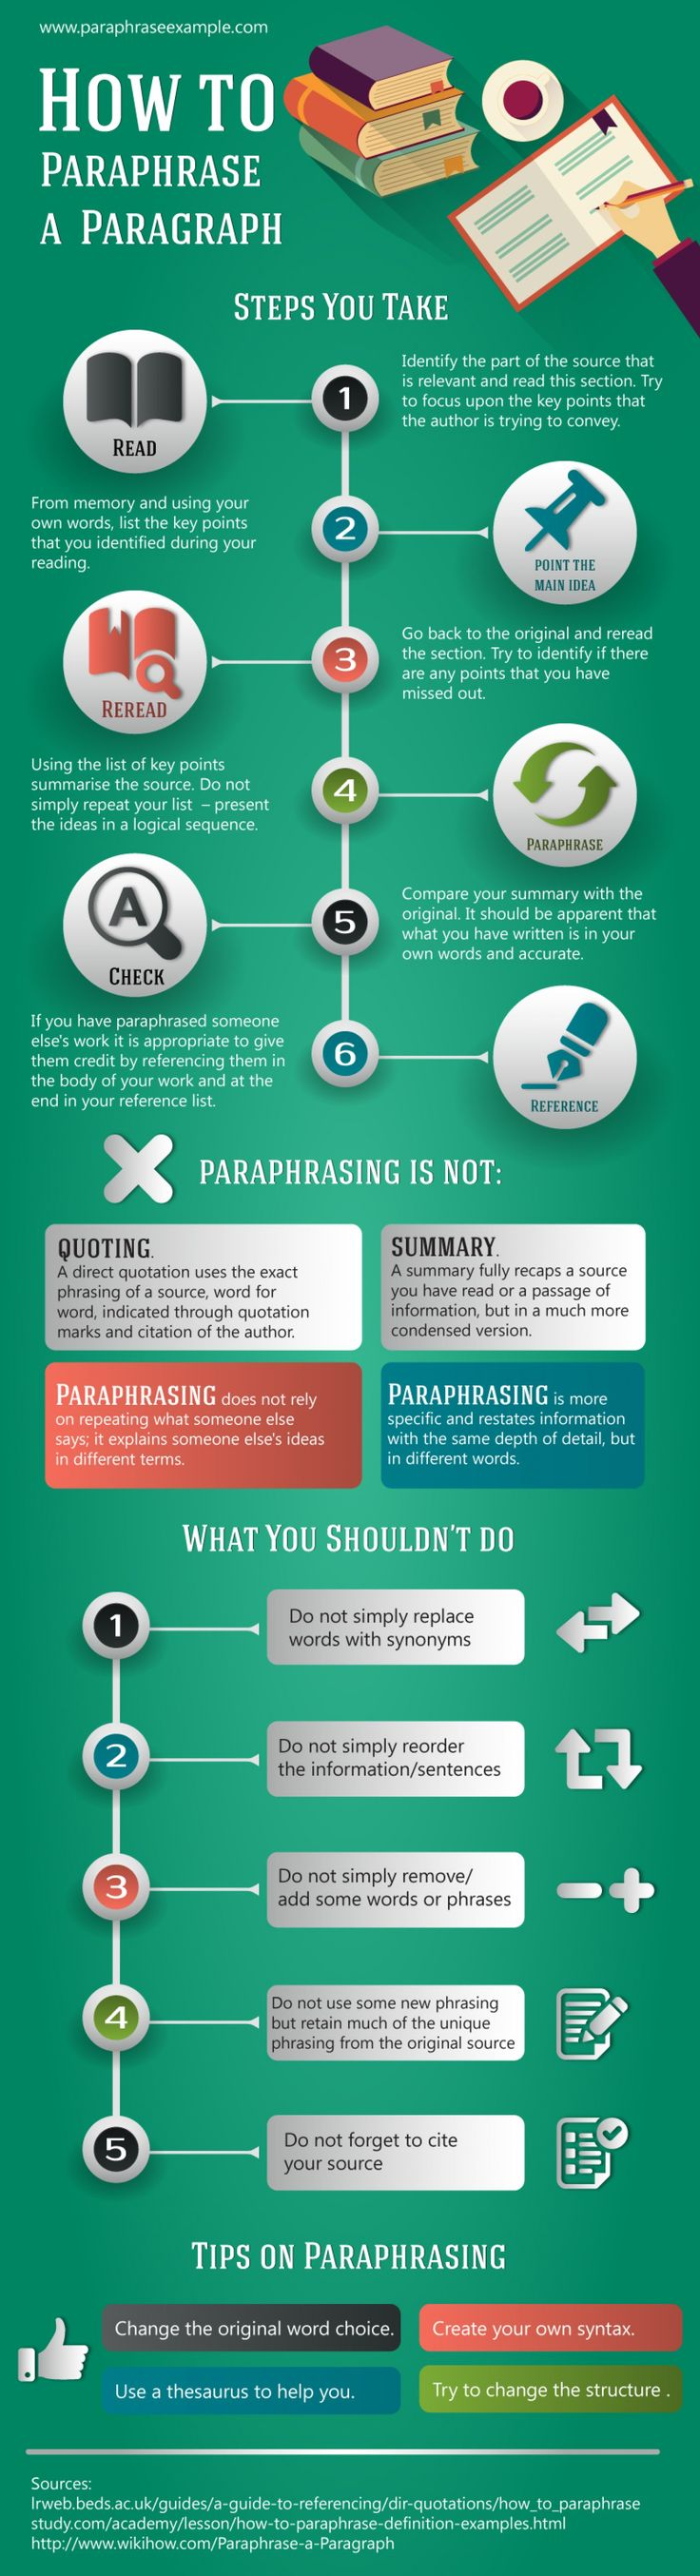 How To Paraphrase A Paragraph Infographic Teaching Writing Services Condense Information From Source